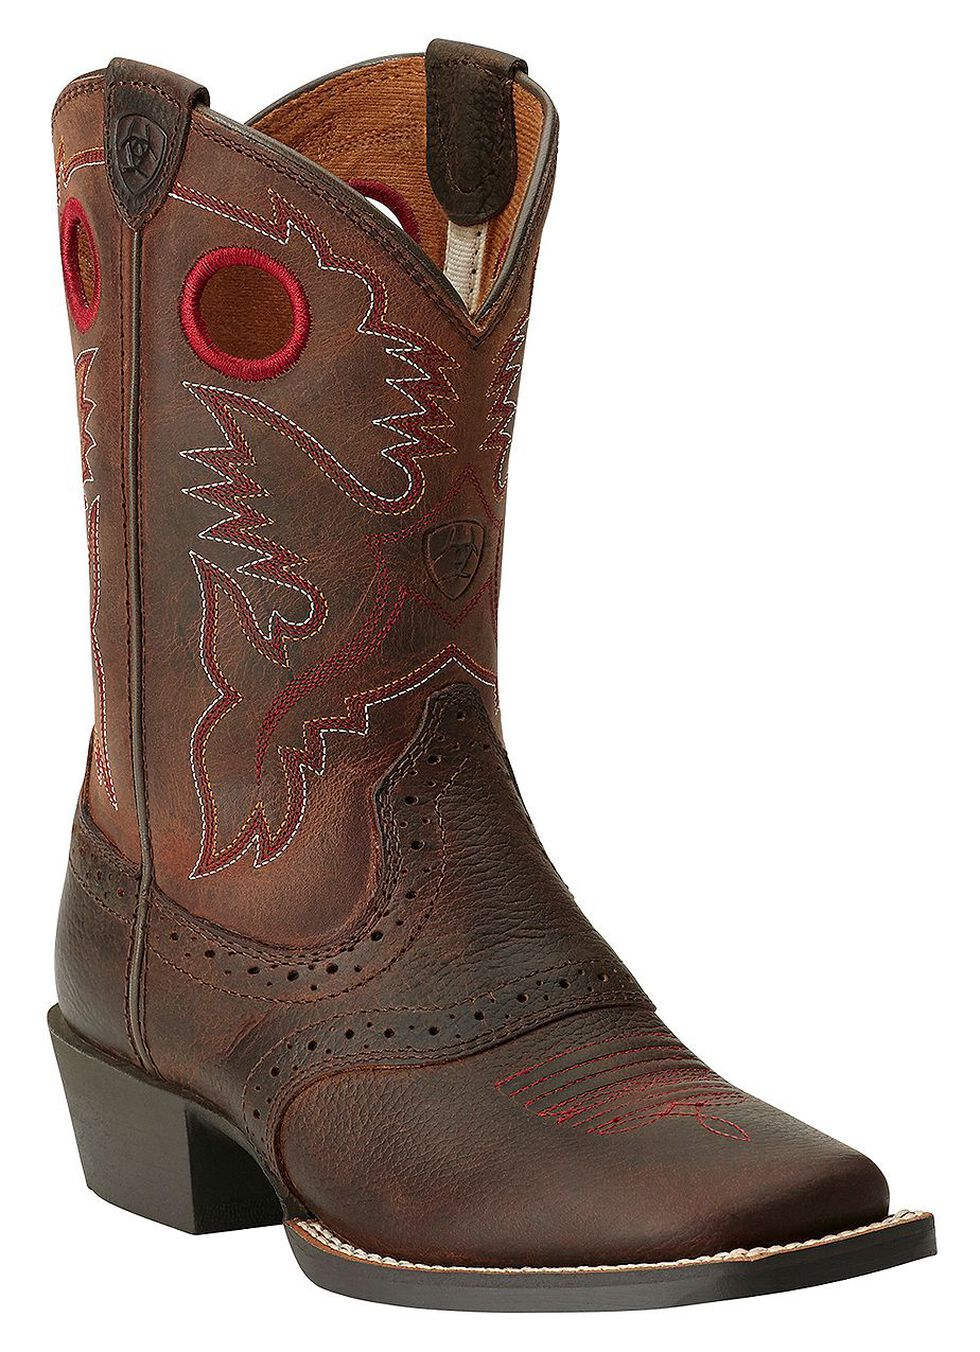 Ariat Boys' Rough Stock Cowboy Boots - Square Toe, Brown, hi-res